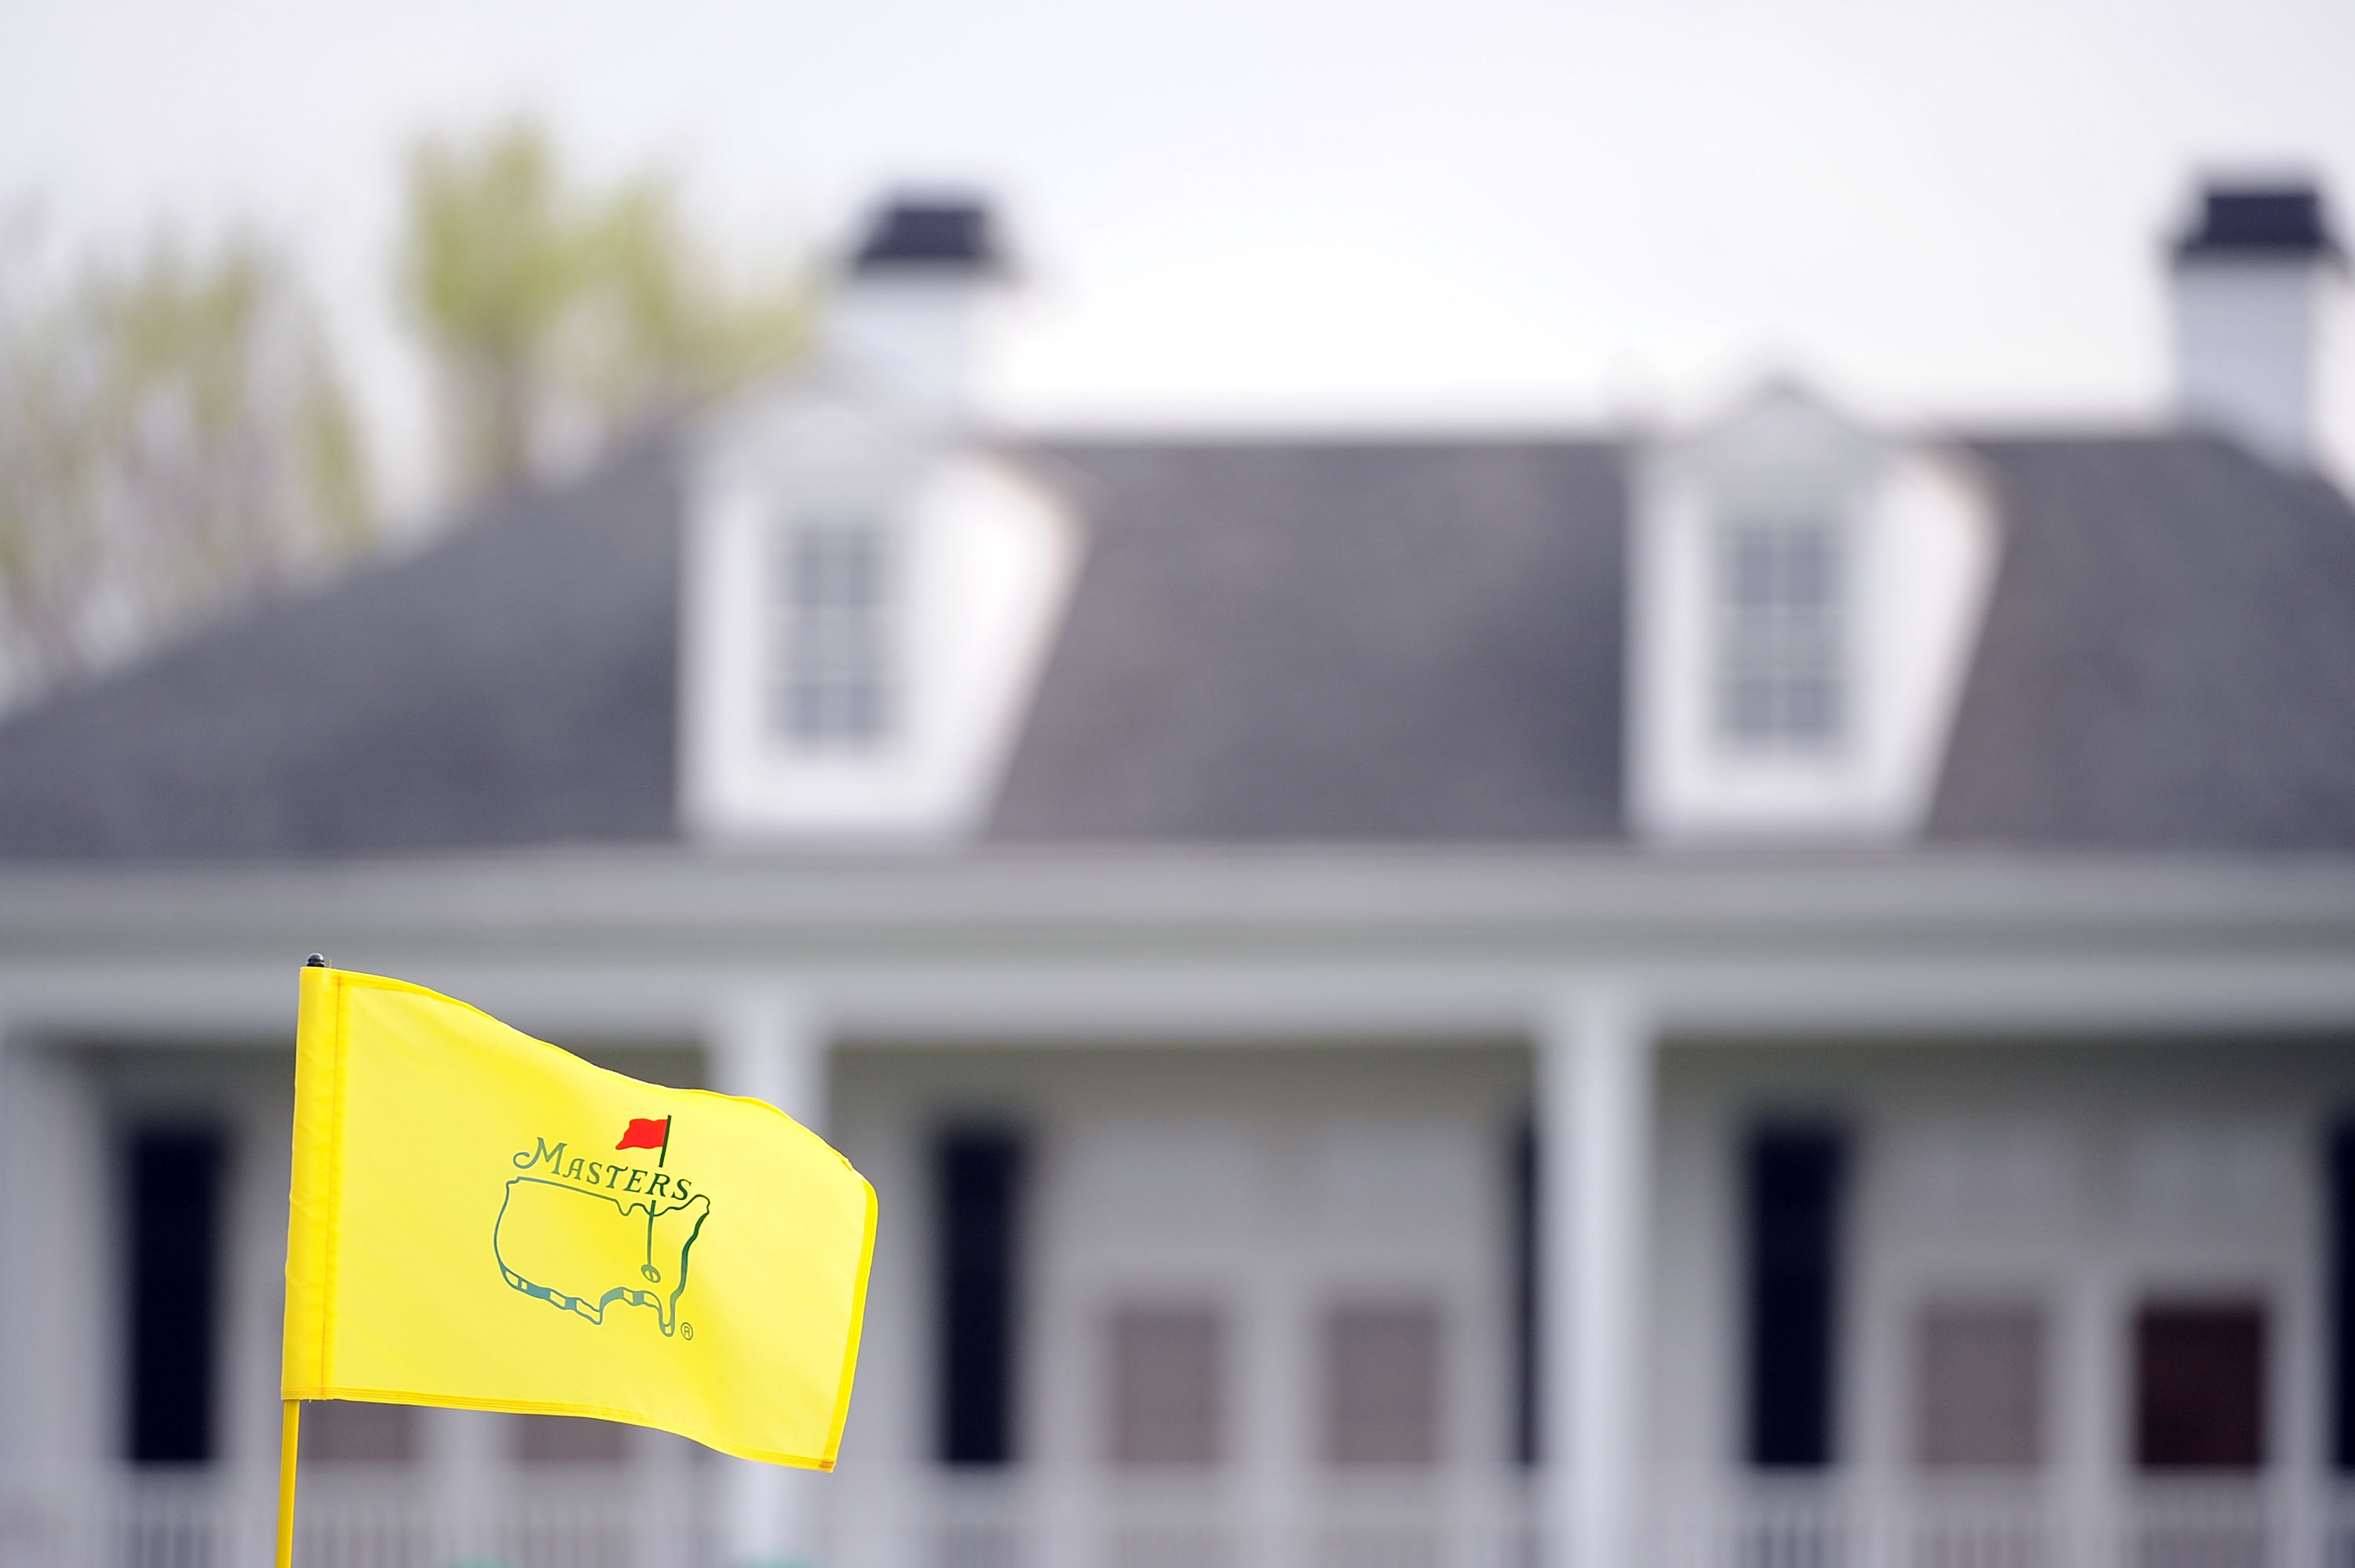 AUGUSTA, GA - APRIL 06:  A flag waves in front of the clubhouse during a practice round prior to the 2009 Masters Tournament at Augusta National Golf Club on April 6, 2009 in Augusta, Georgia.  (Photo by Harry How/Getty Images)